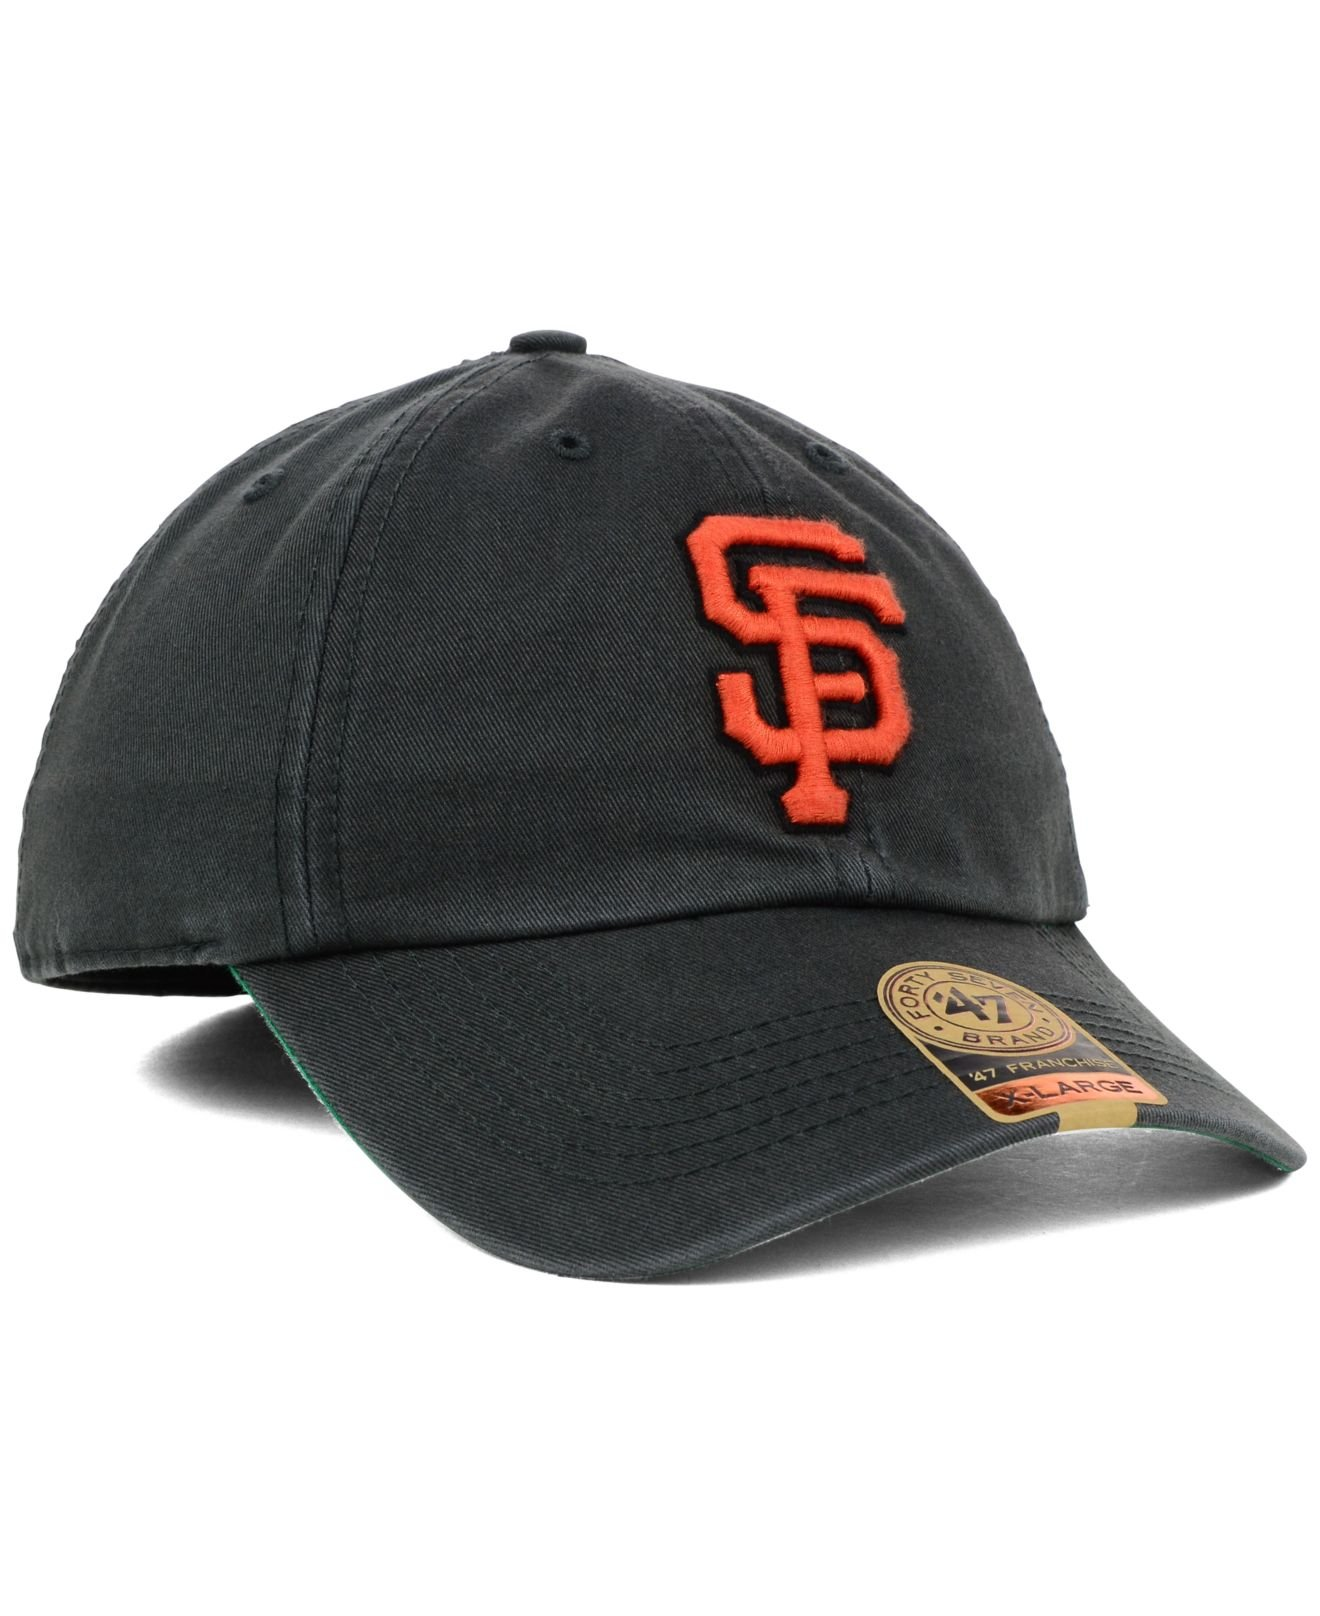 check out the sale of shoes popular brand 47 Brand Cotton San Francisco Giants Mlb Hot Corner '47 Franchise ...